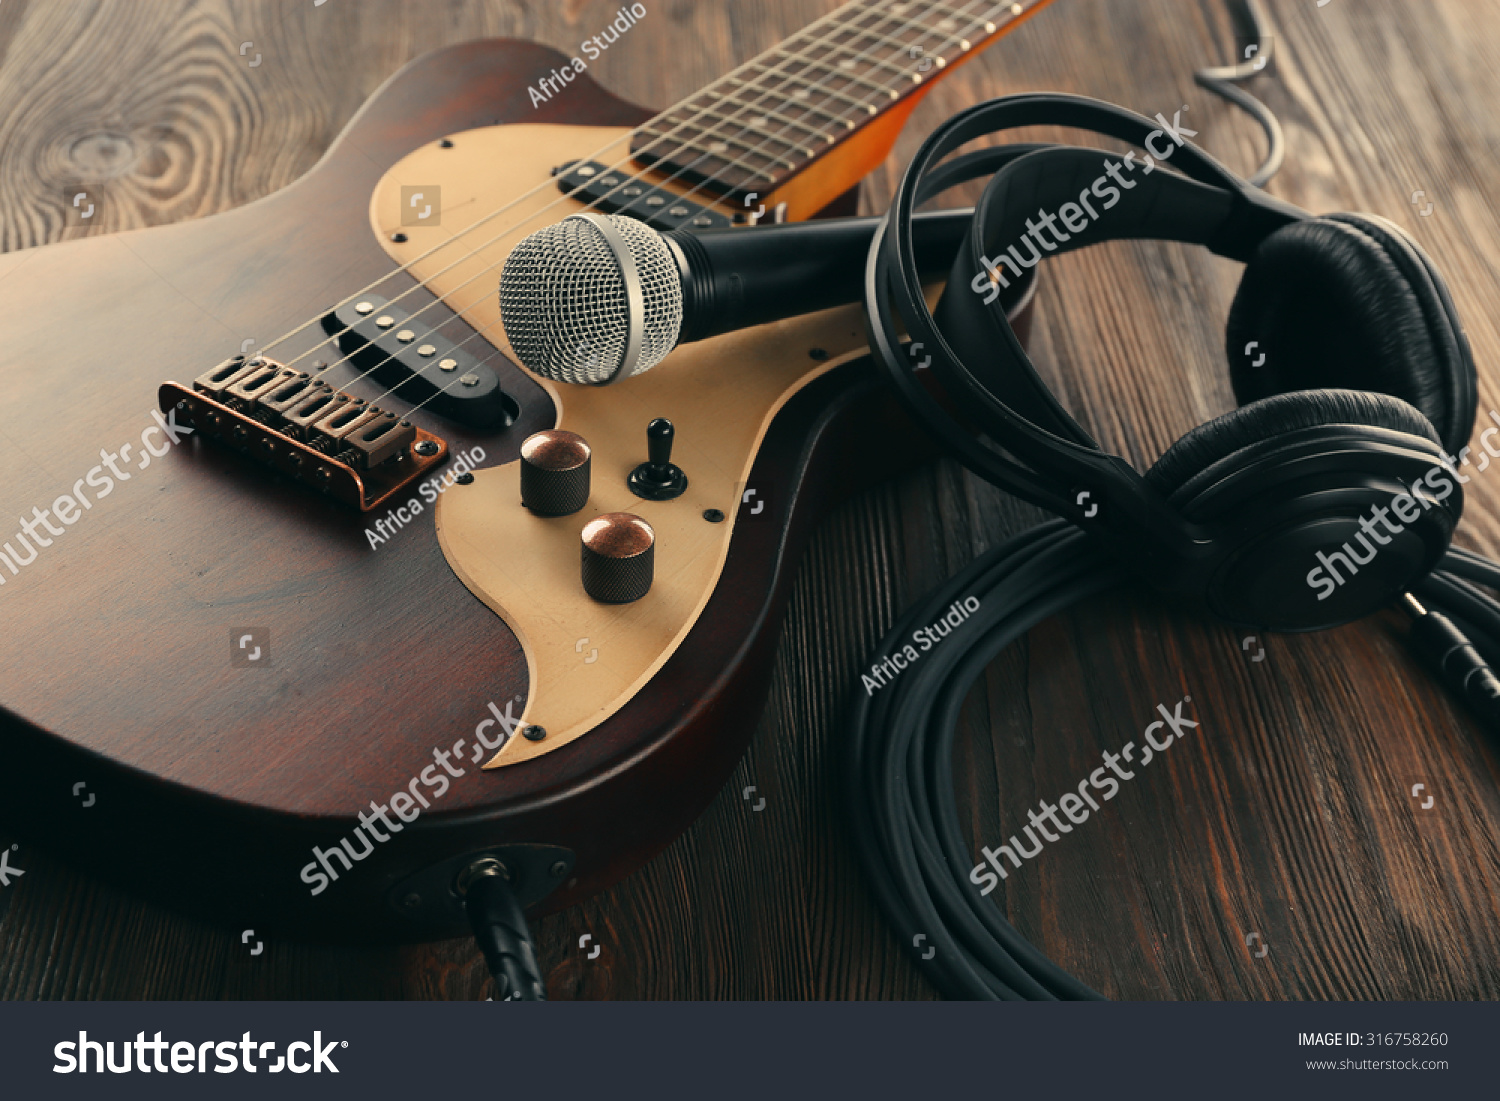 electric guitar with microphone and headphones on wooden table close up stock photo 316758260. Black Bedroom Furniture Sets. Home Design Ideas